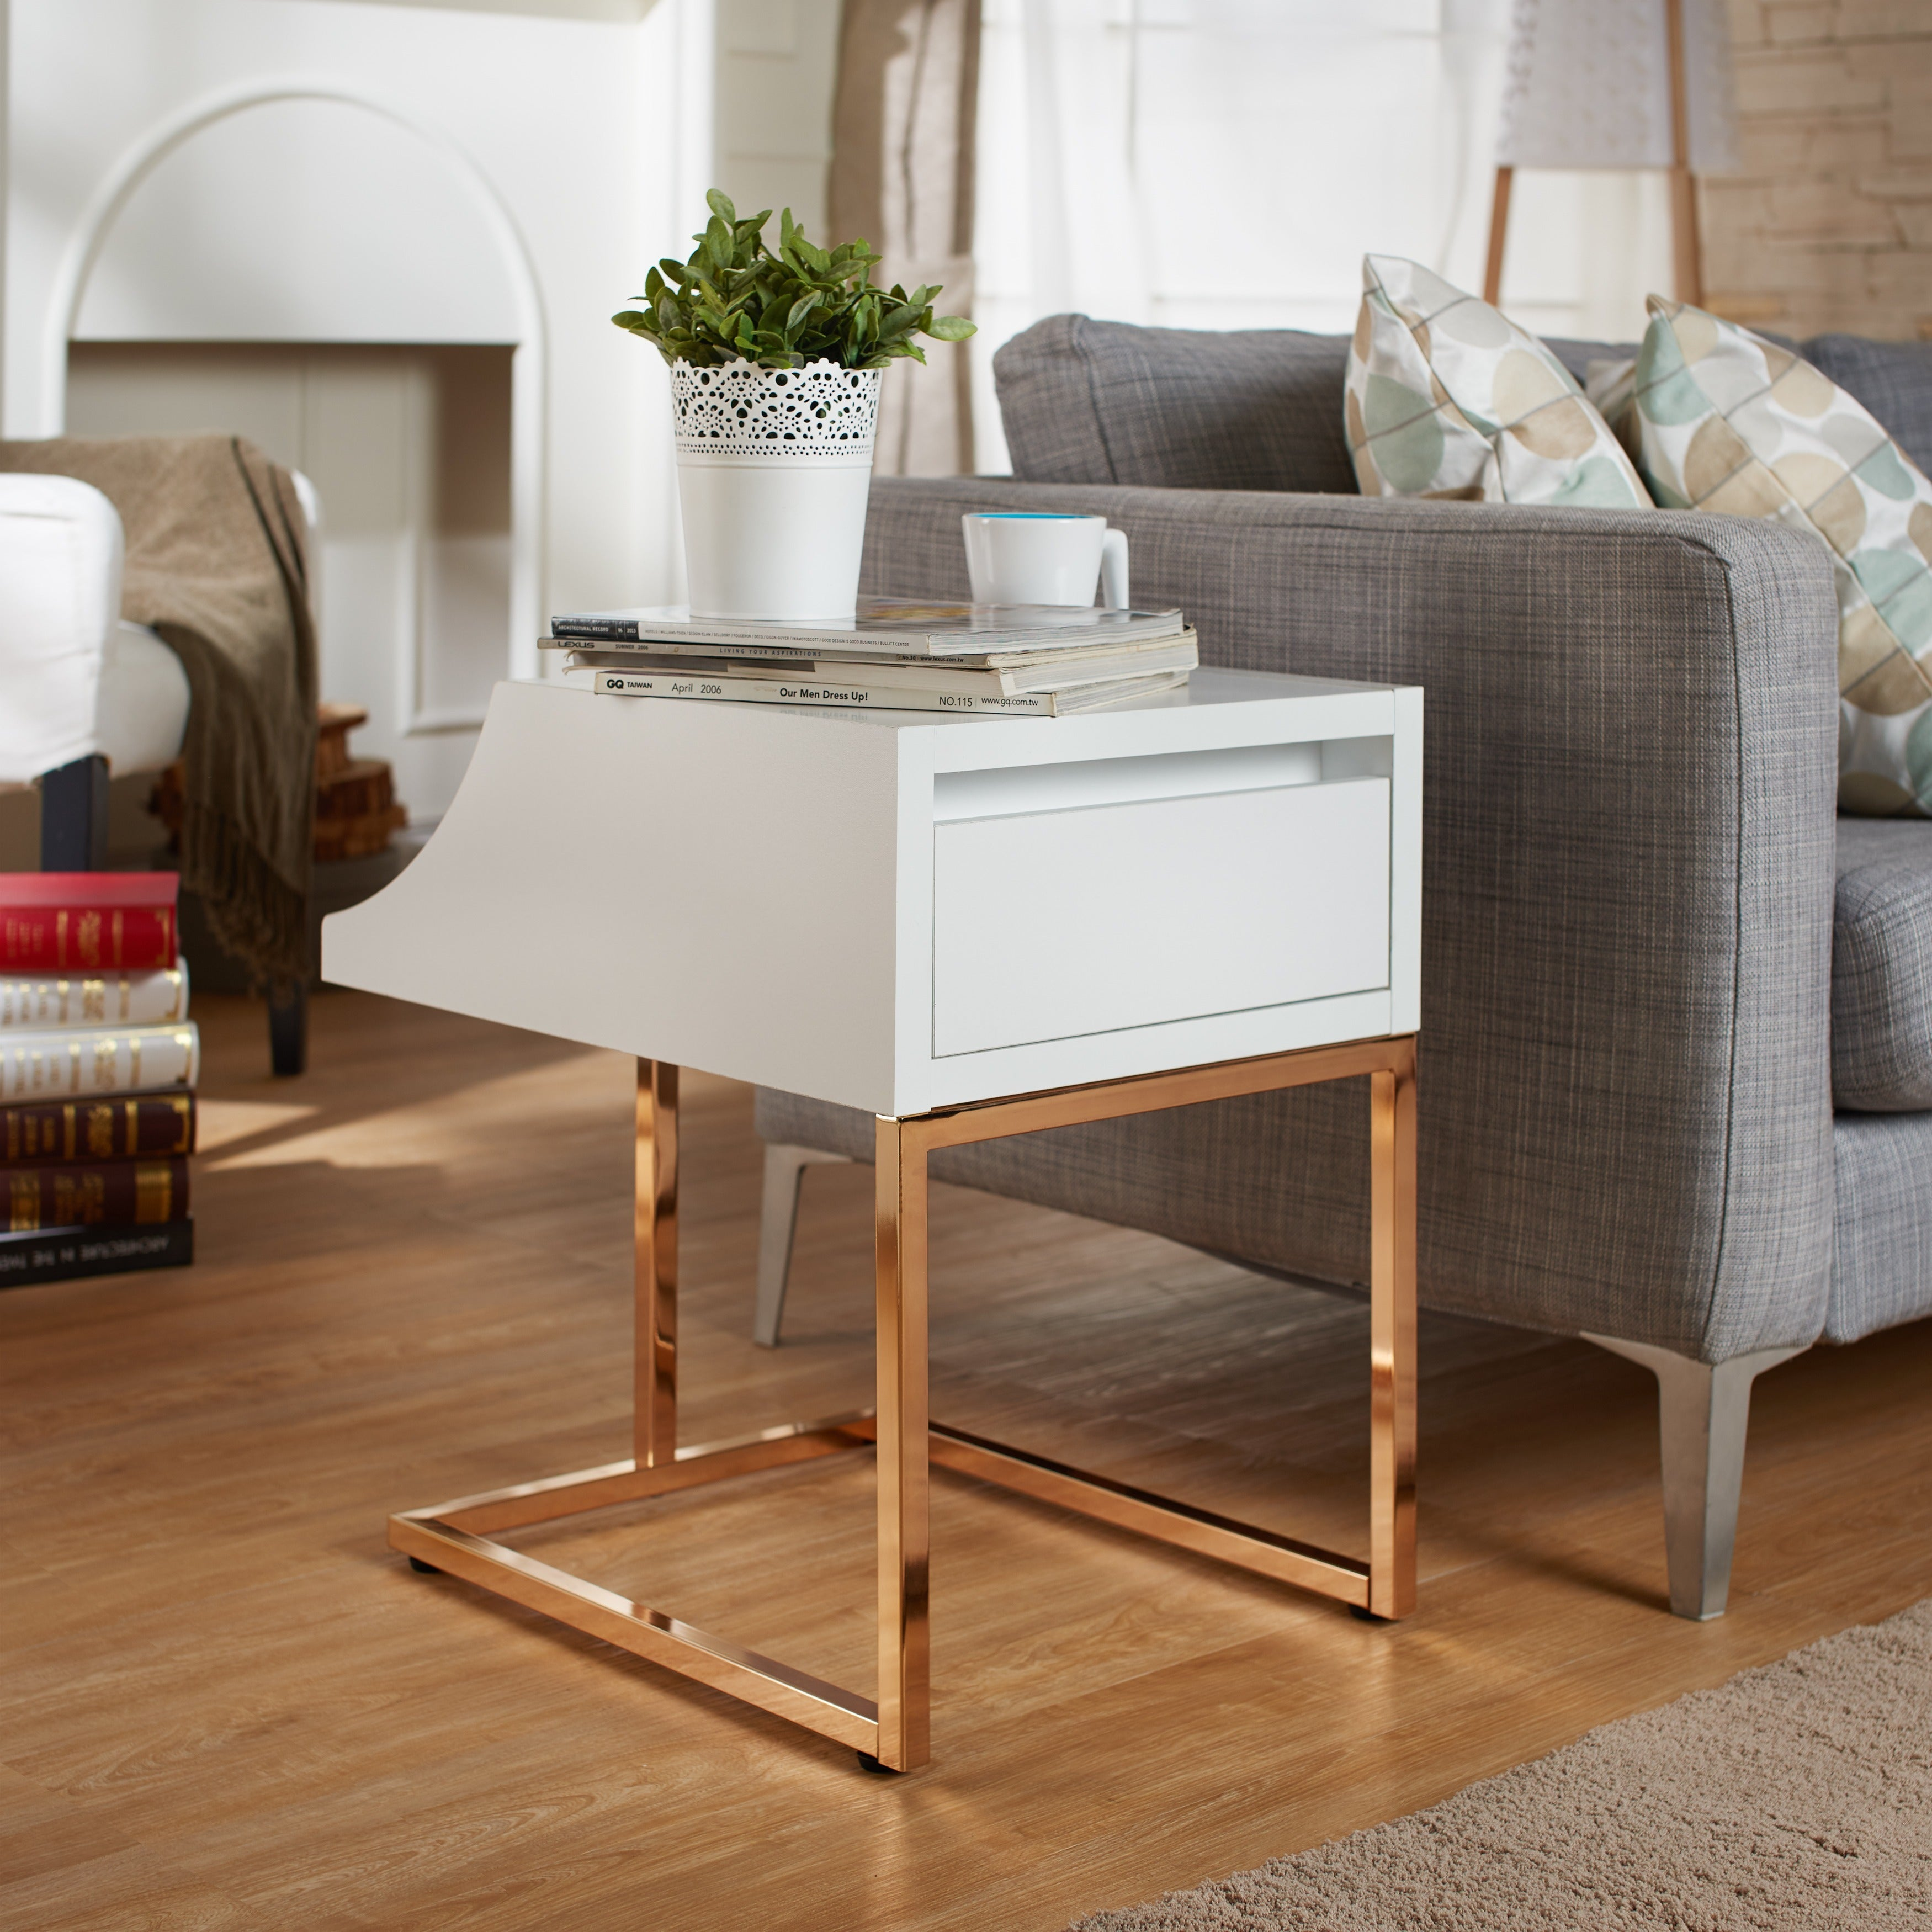 Sensational Furniture Of America Lorria Contemporary Rose Gold End Table Caraccident5 Cool Chair Designs And Ideas Caraccident5Info